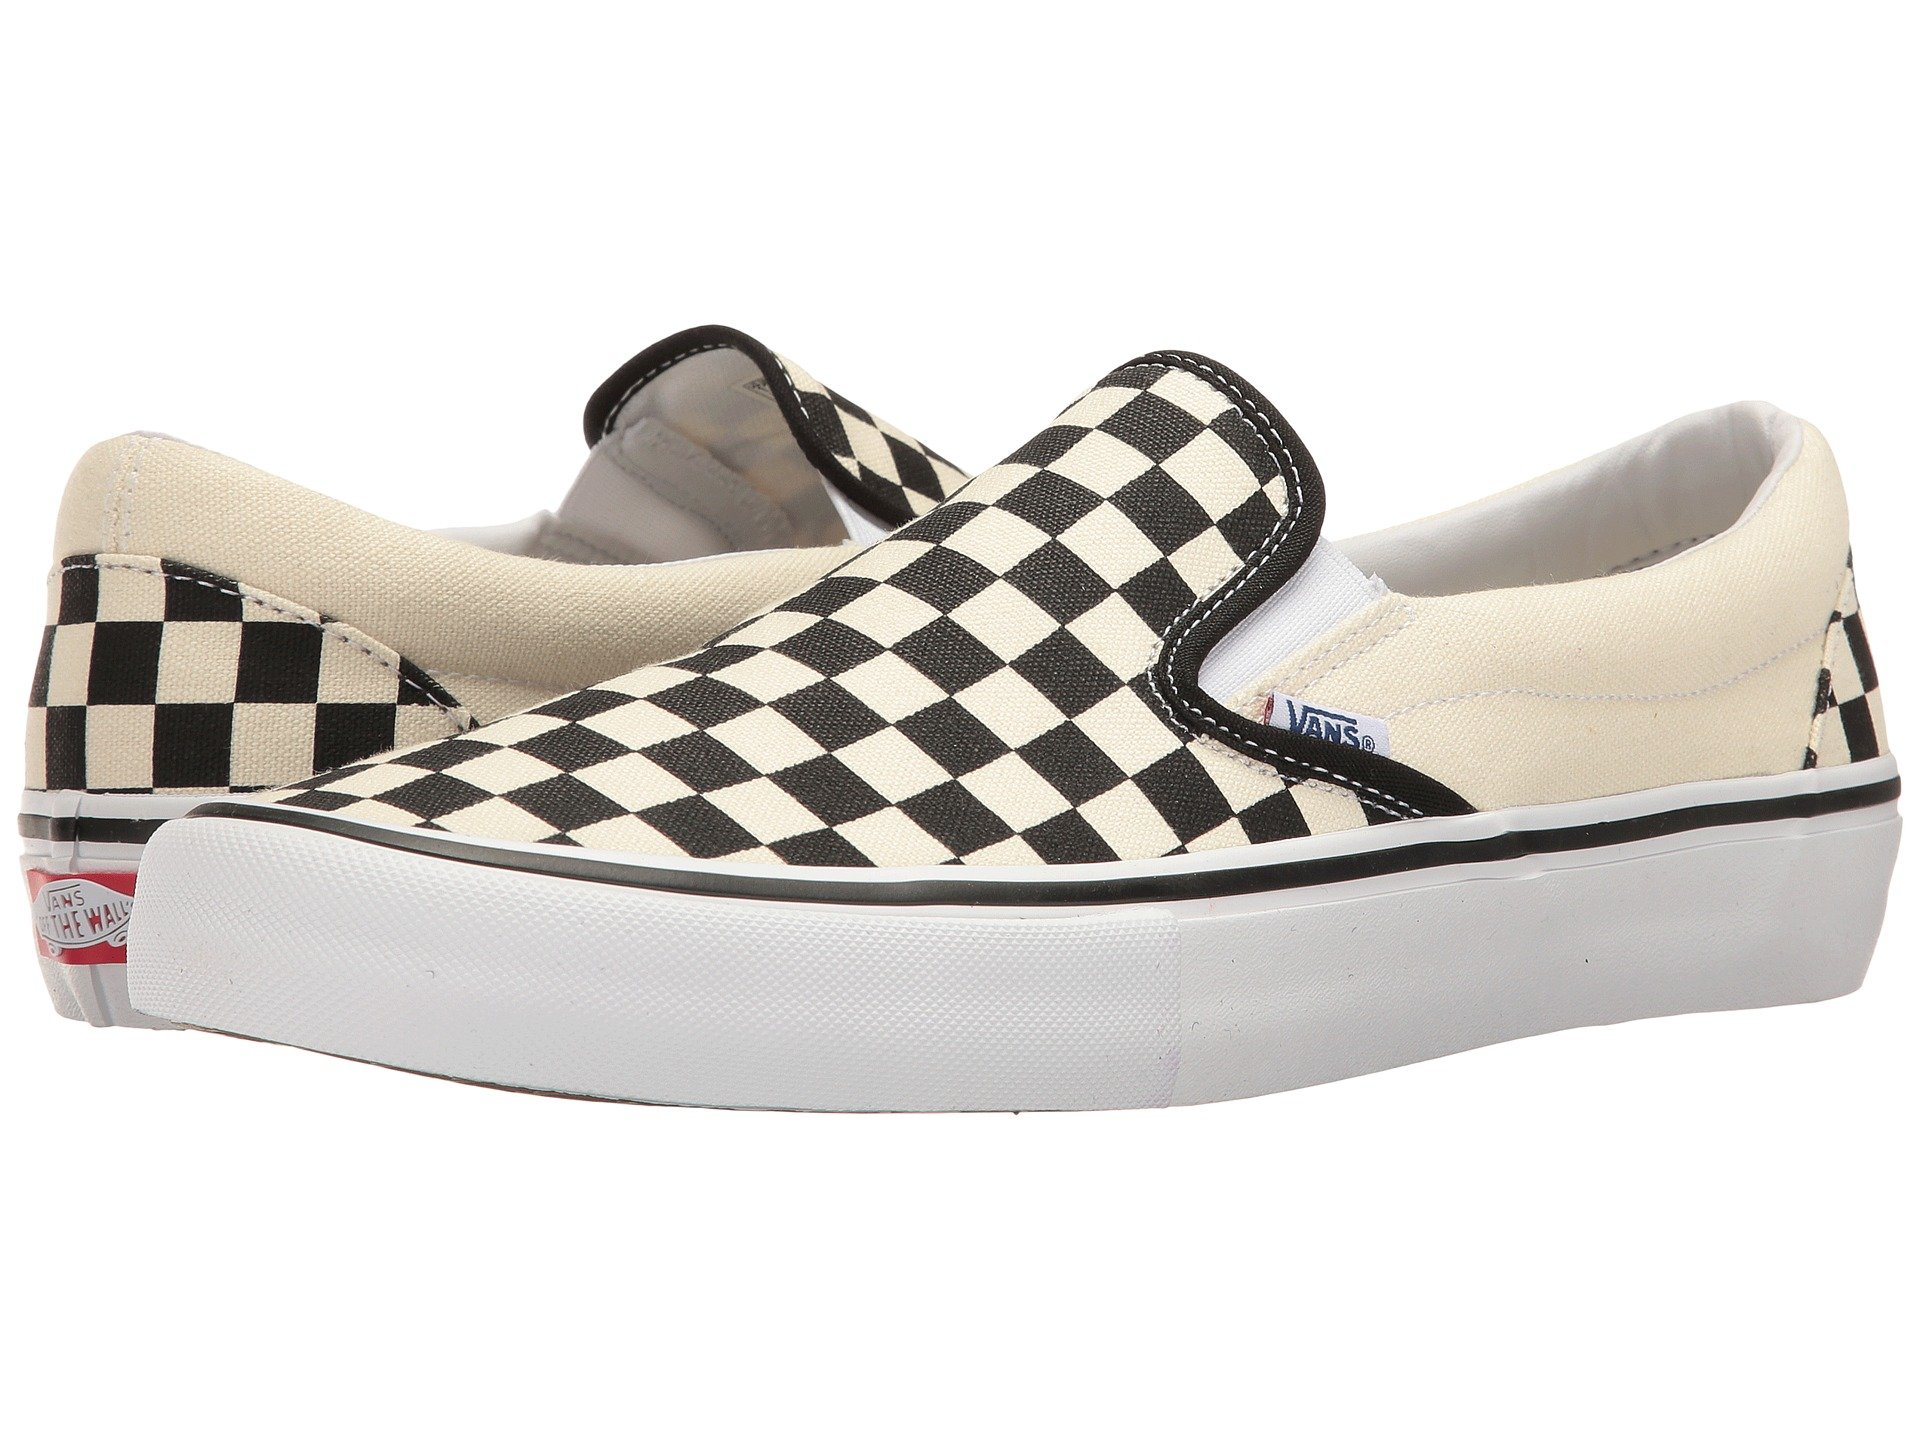 0ee9d769df4f0c Buy vans slip on pro vs lite